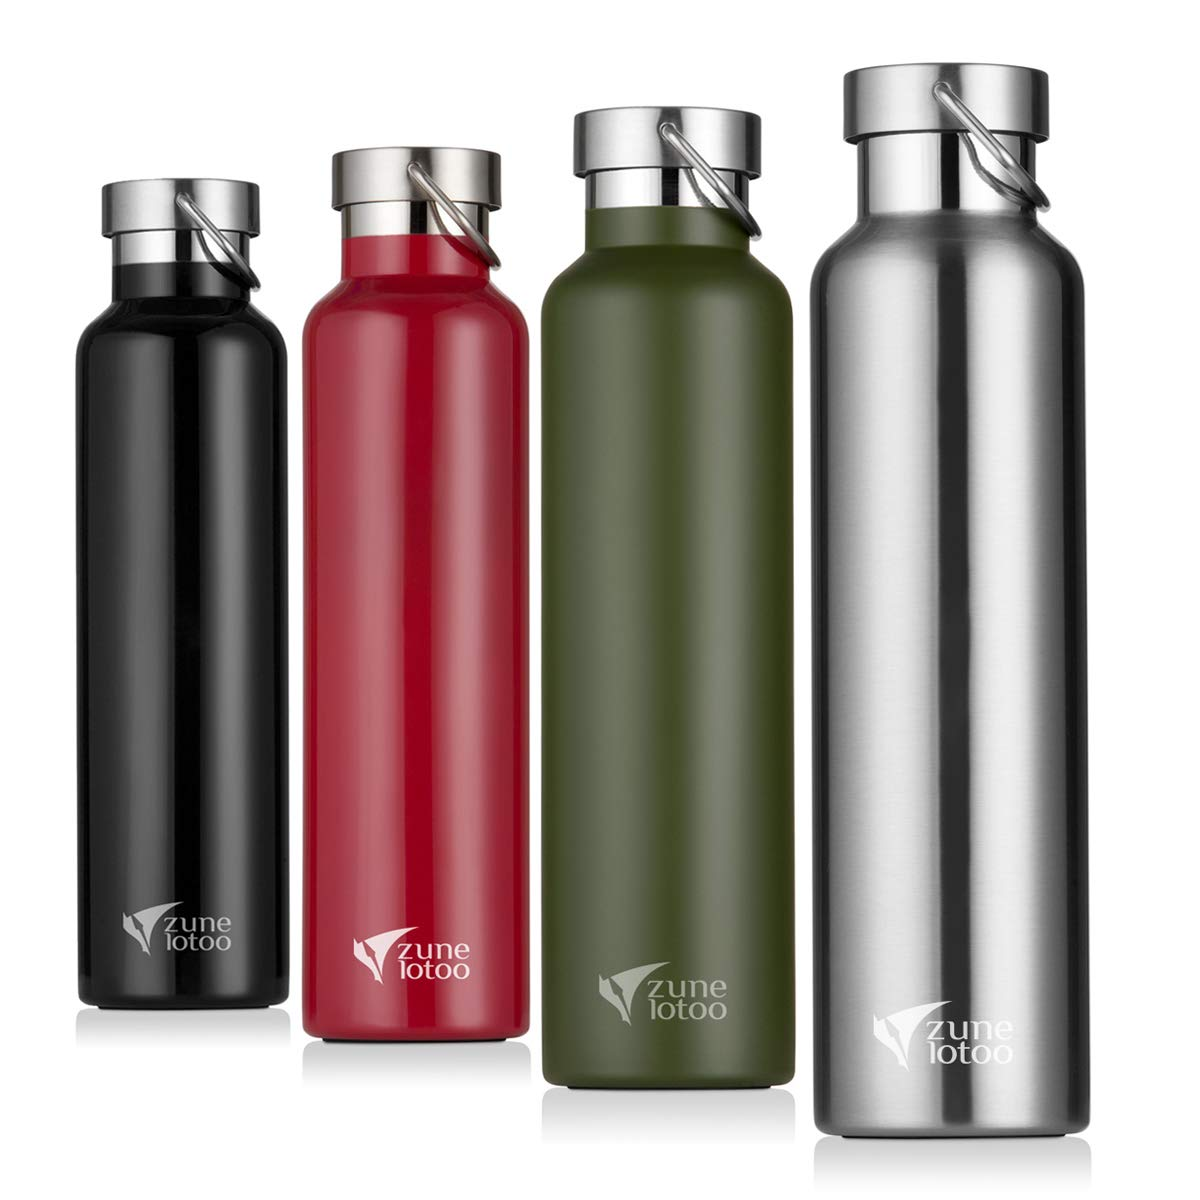 Zune Lotoo Stainless Steel Water Bottle 26oz- Wide Mouth Vacuum Insulated 18/8 Stainless Steel with Leak Proof Flex Cap for Camping,Hiking,Sports